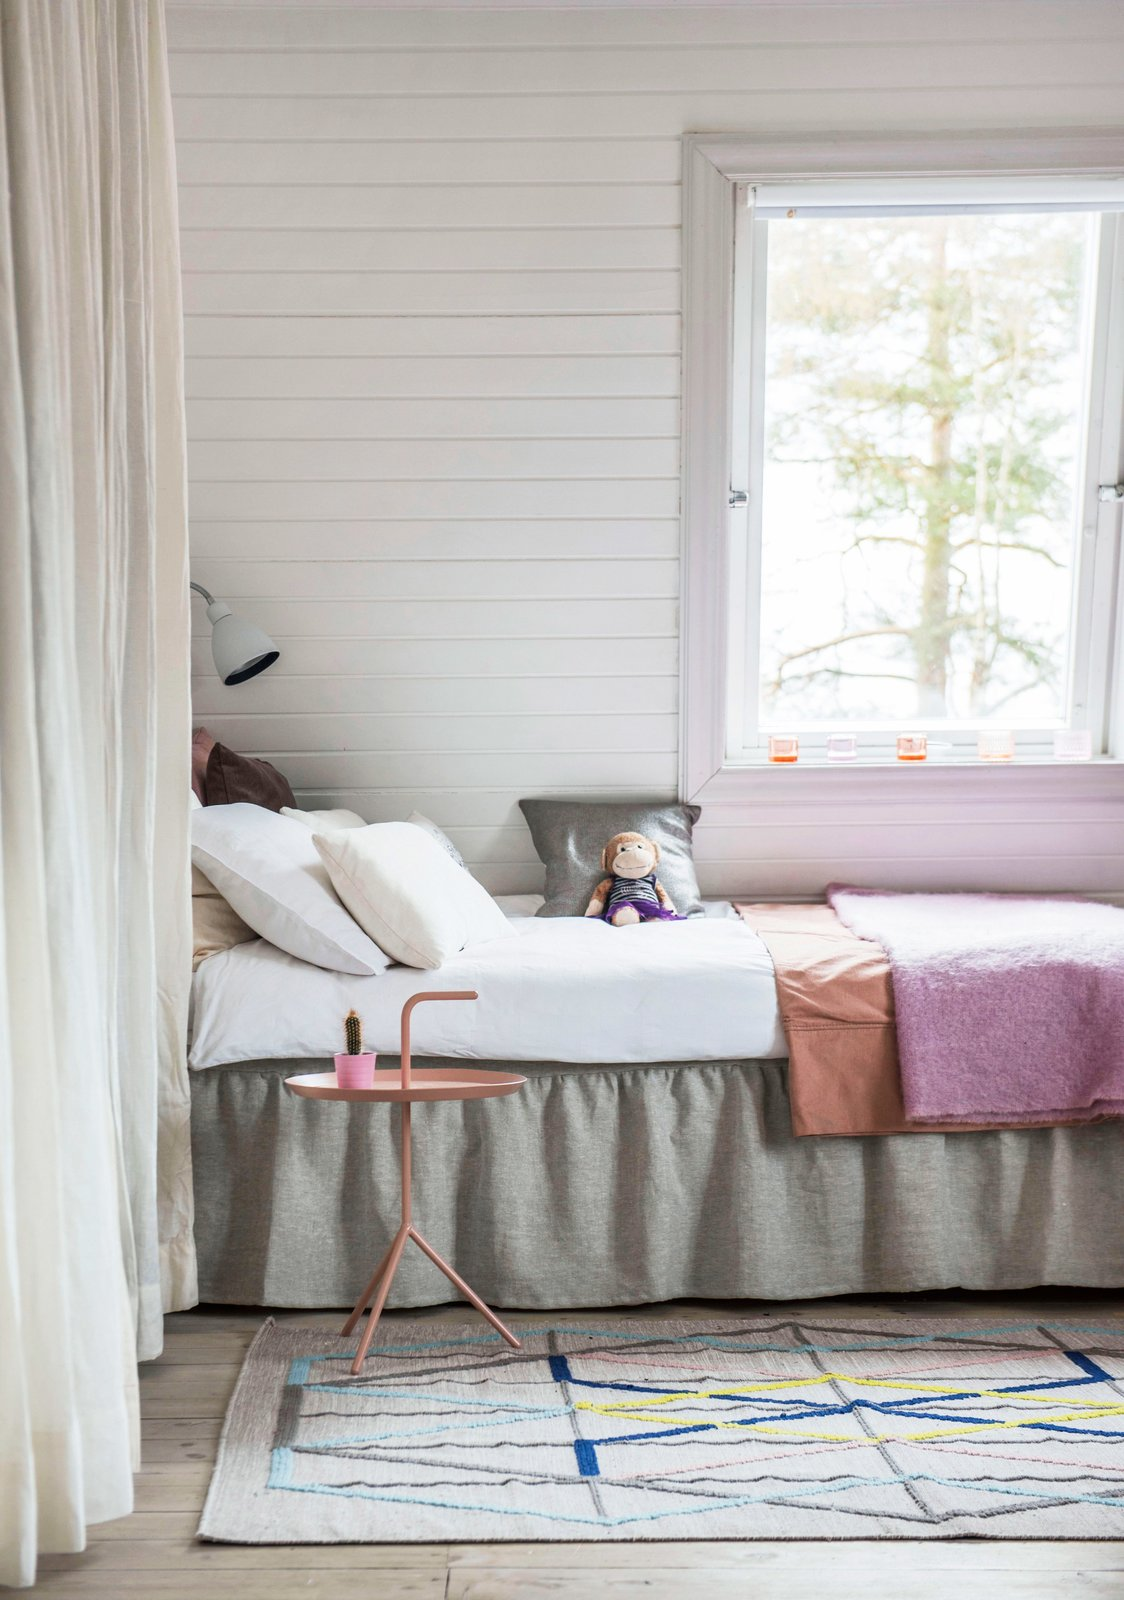 Photo 3 of 4 in Time to update your boudoir: styling tips for the bedroom